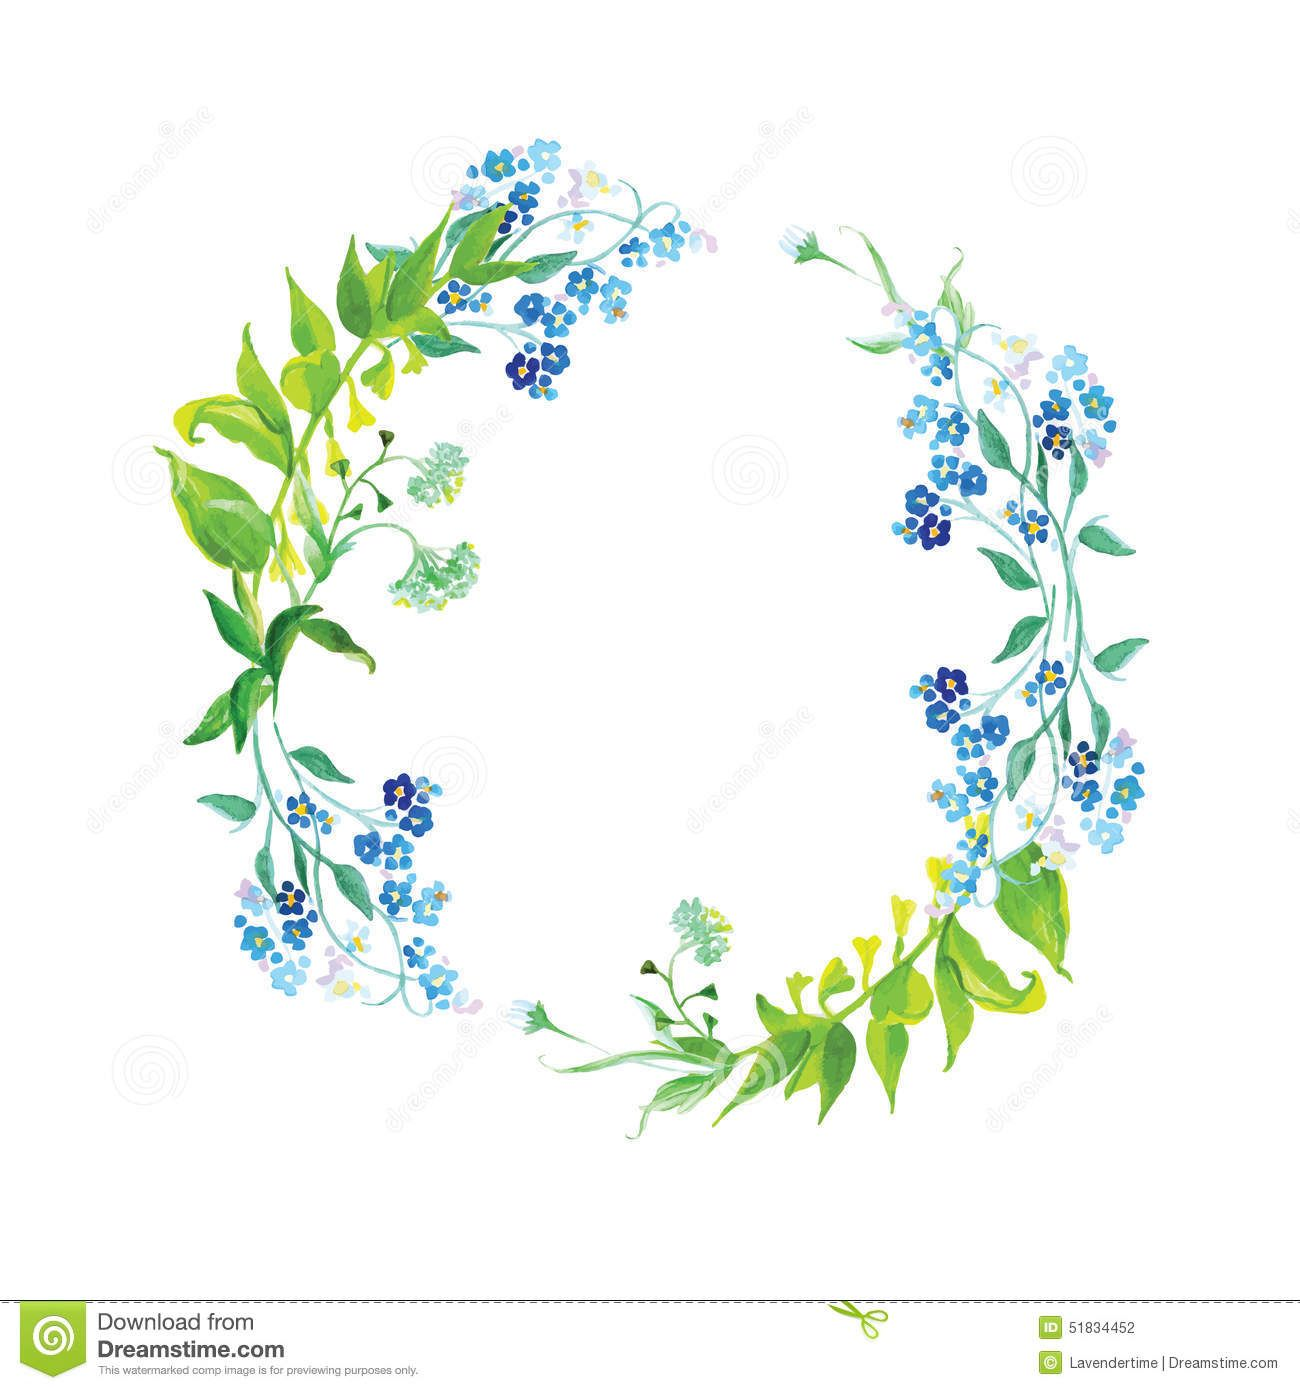 Forget-me-not And Herb Watercolor Round Vector Frame - Download From ...